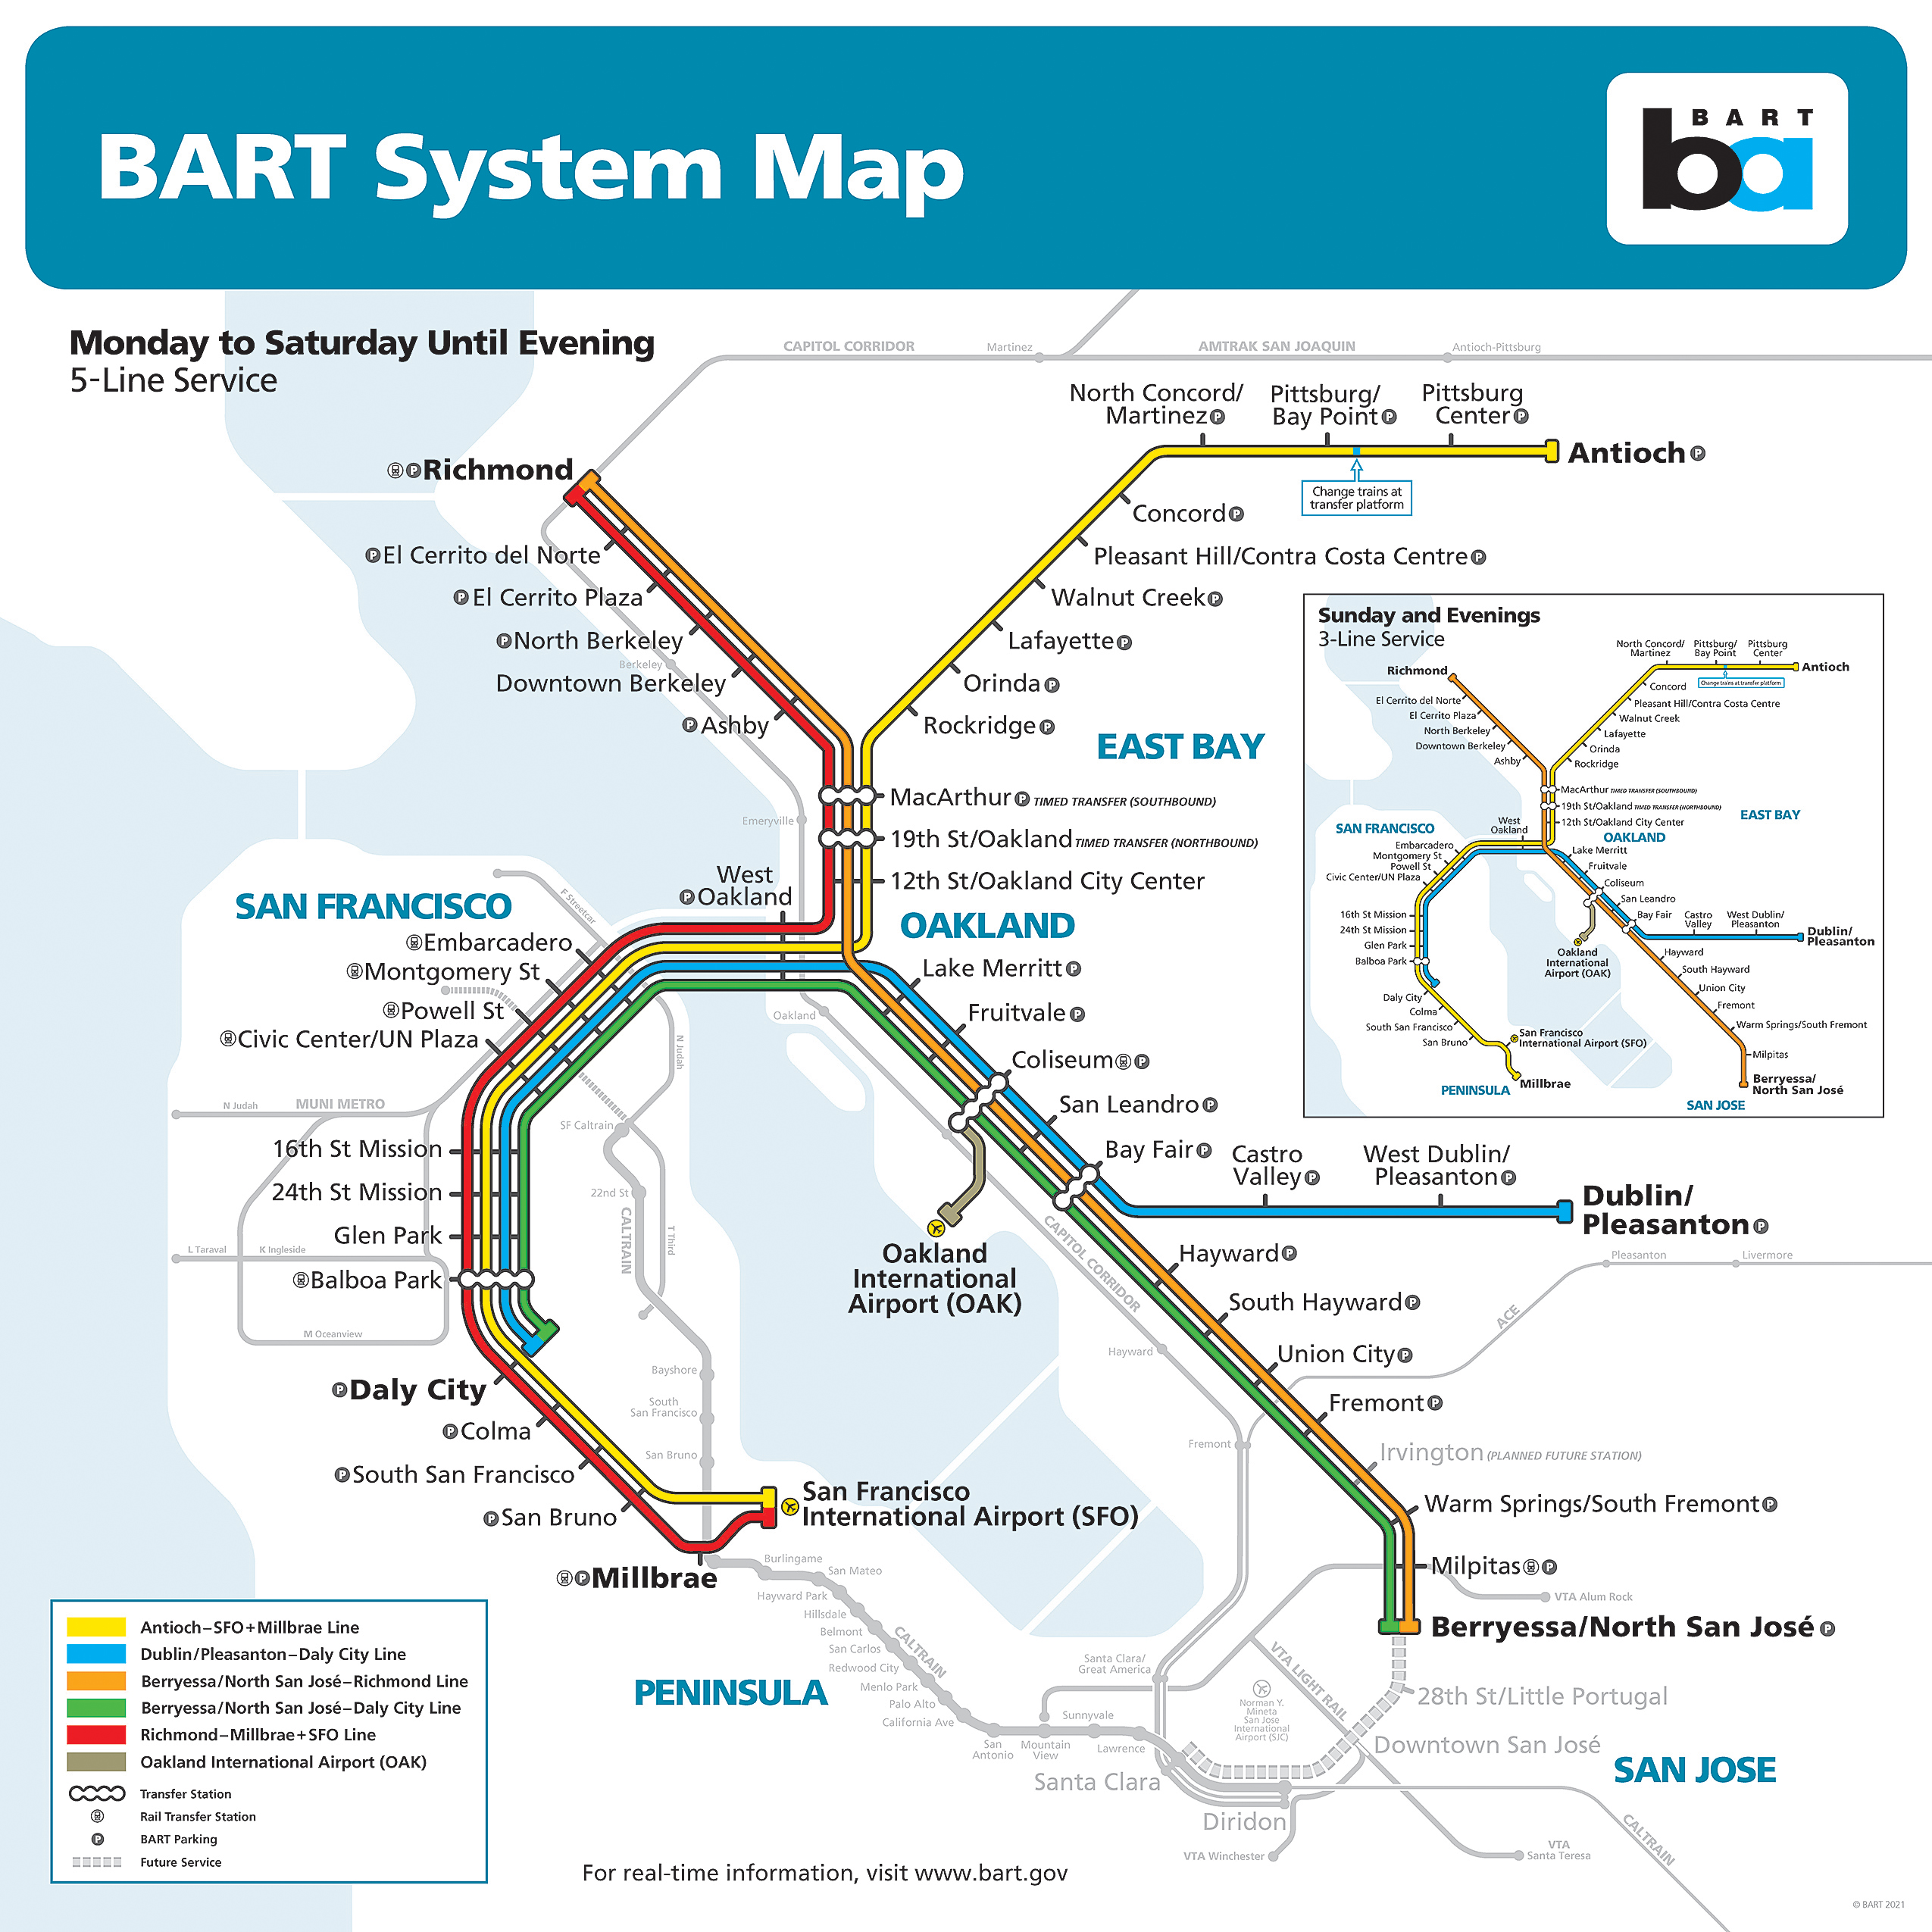 BART system map starting August 2, 2021